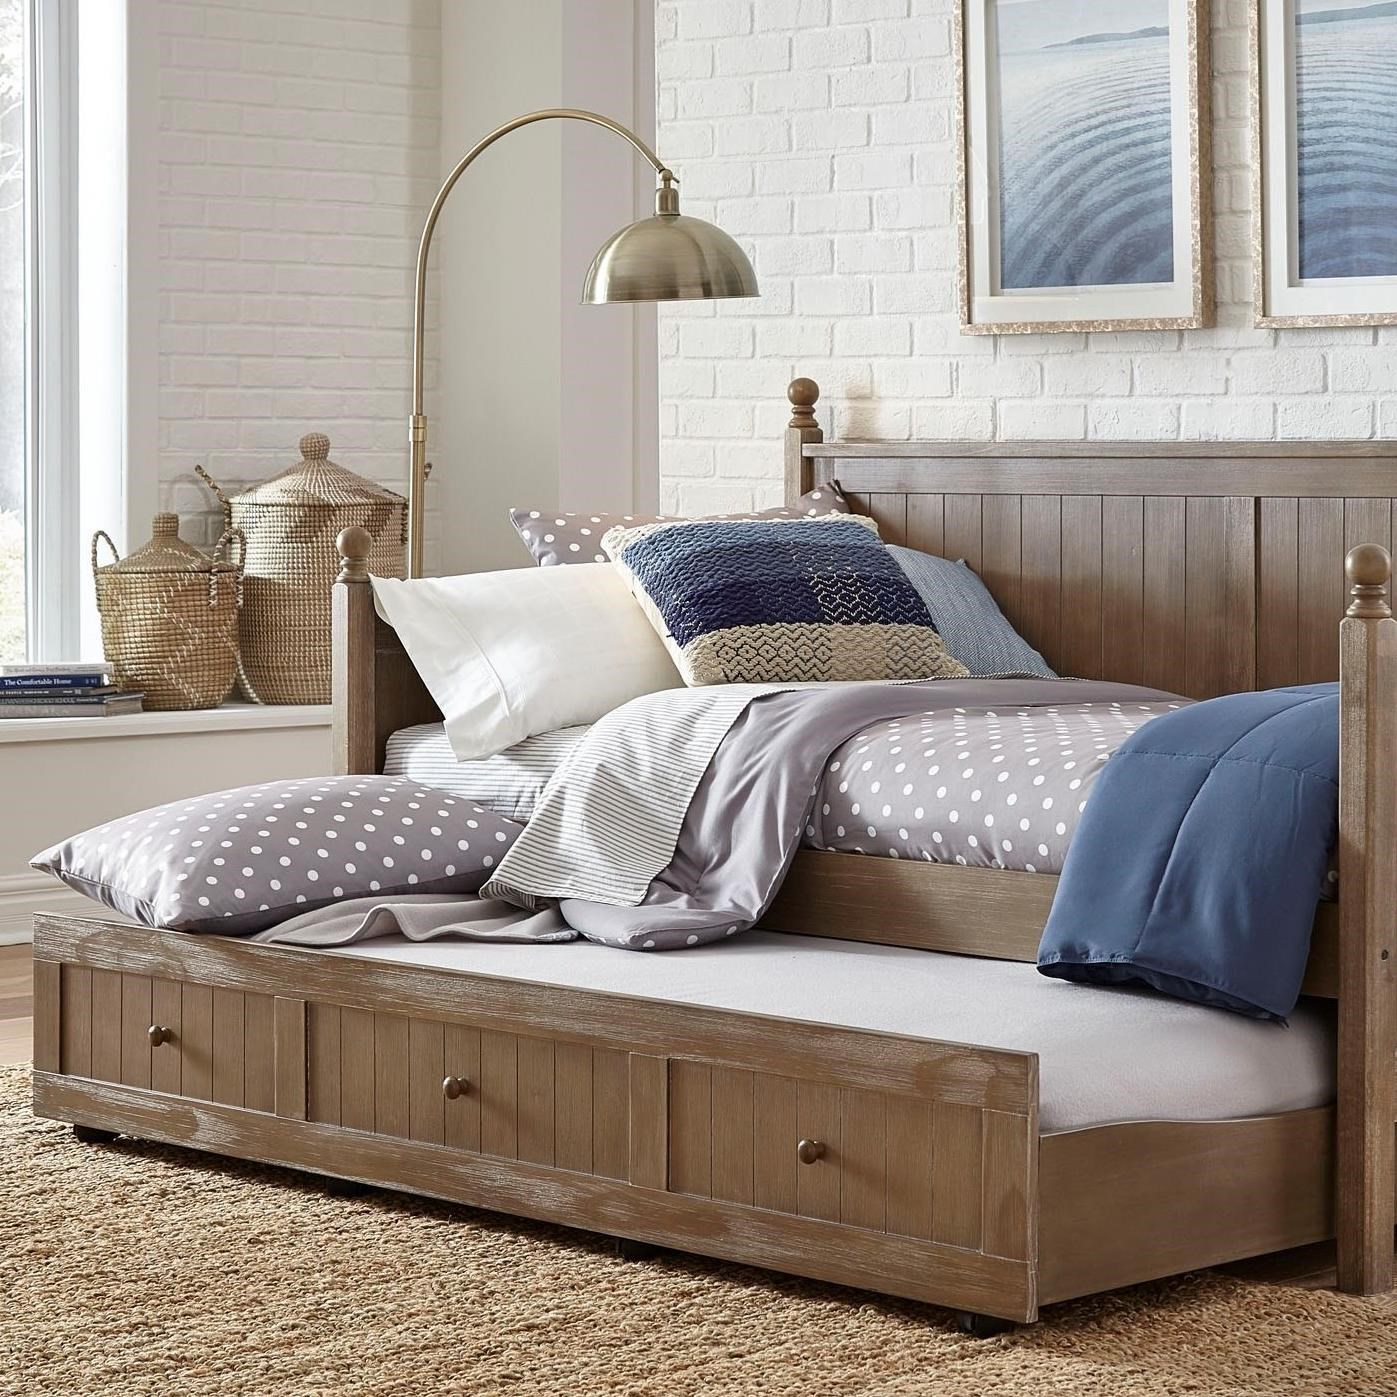 Daybeds Carston Trundle by Fashion Bed Group at SlumberWorld